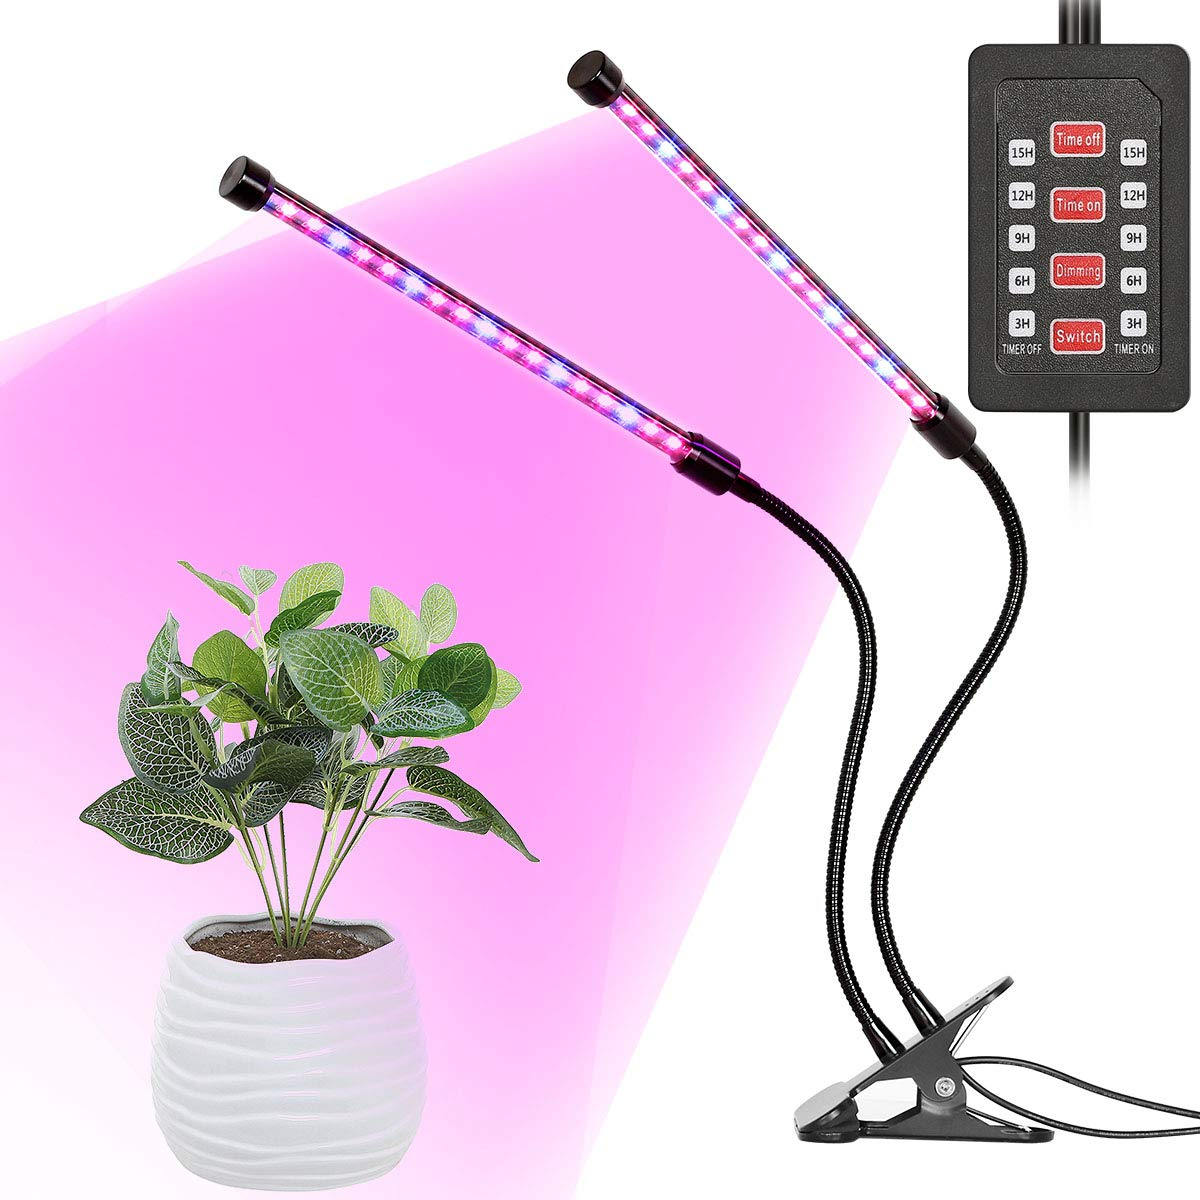 LED Grow Light,INKERSCOOP Upgraded Grow Lamp Auto ON/Off 18W 36 LED Dual Head 3-6-9-12-15 Timer 5 Dimmable Levels Plant Growing Lights 3 Light Spectrum Switching Blue/Red/RED&Blue Light